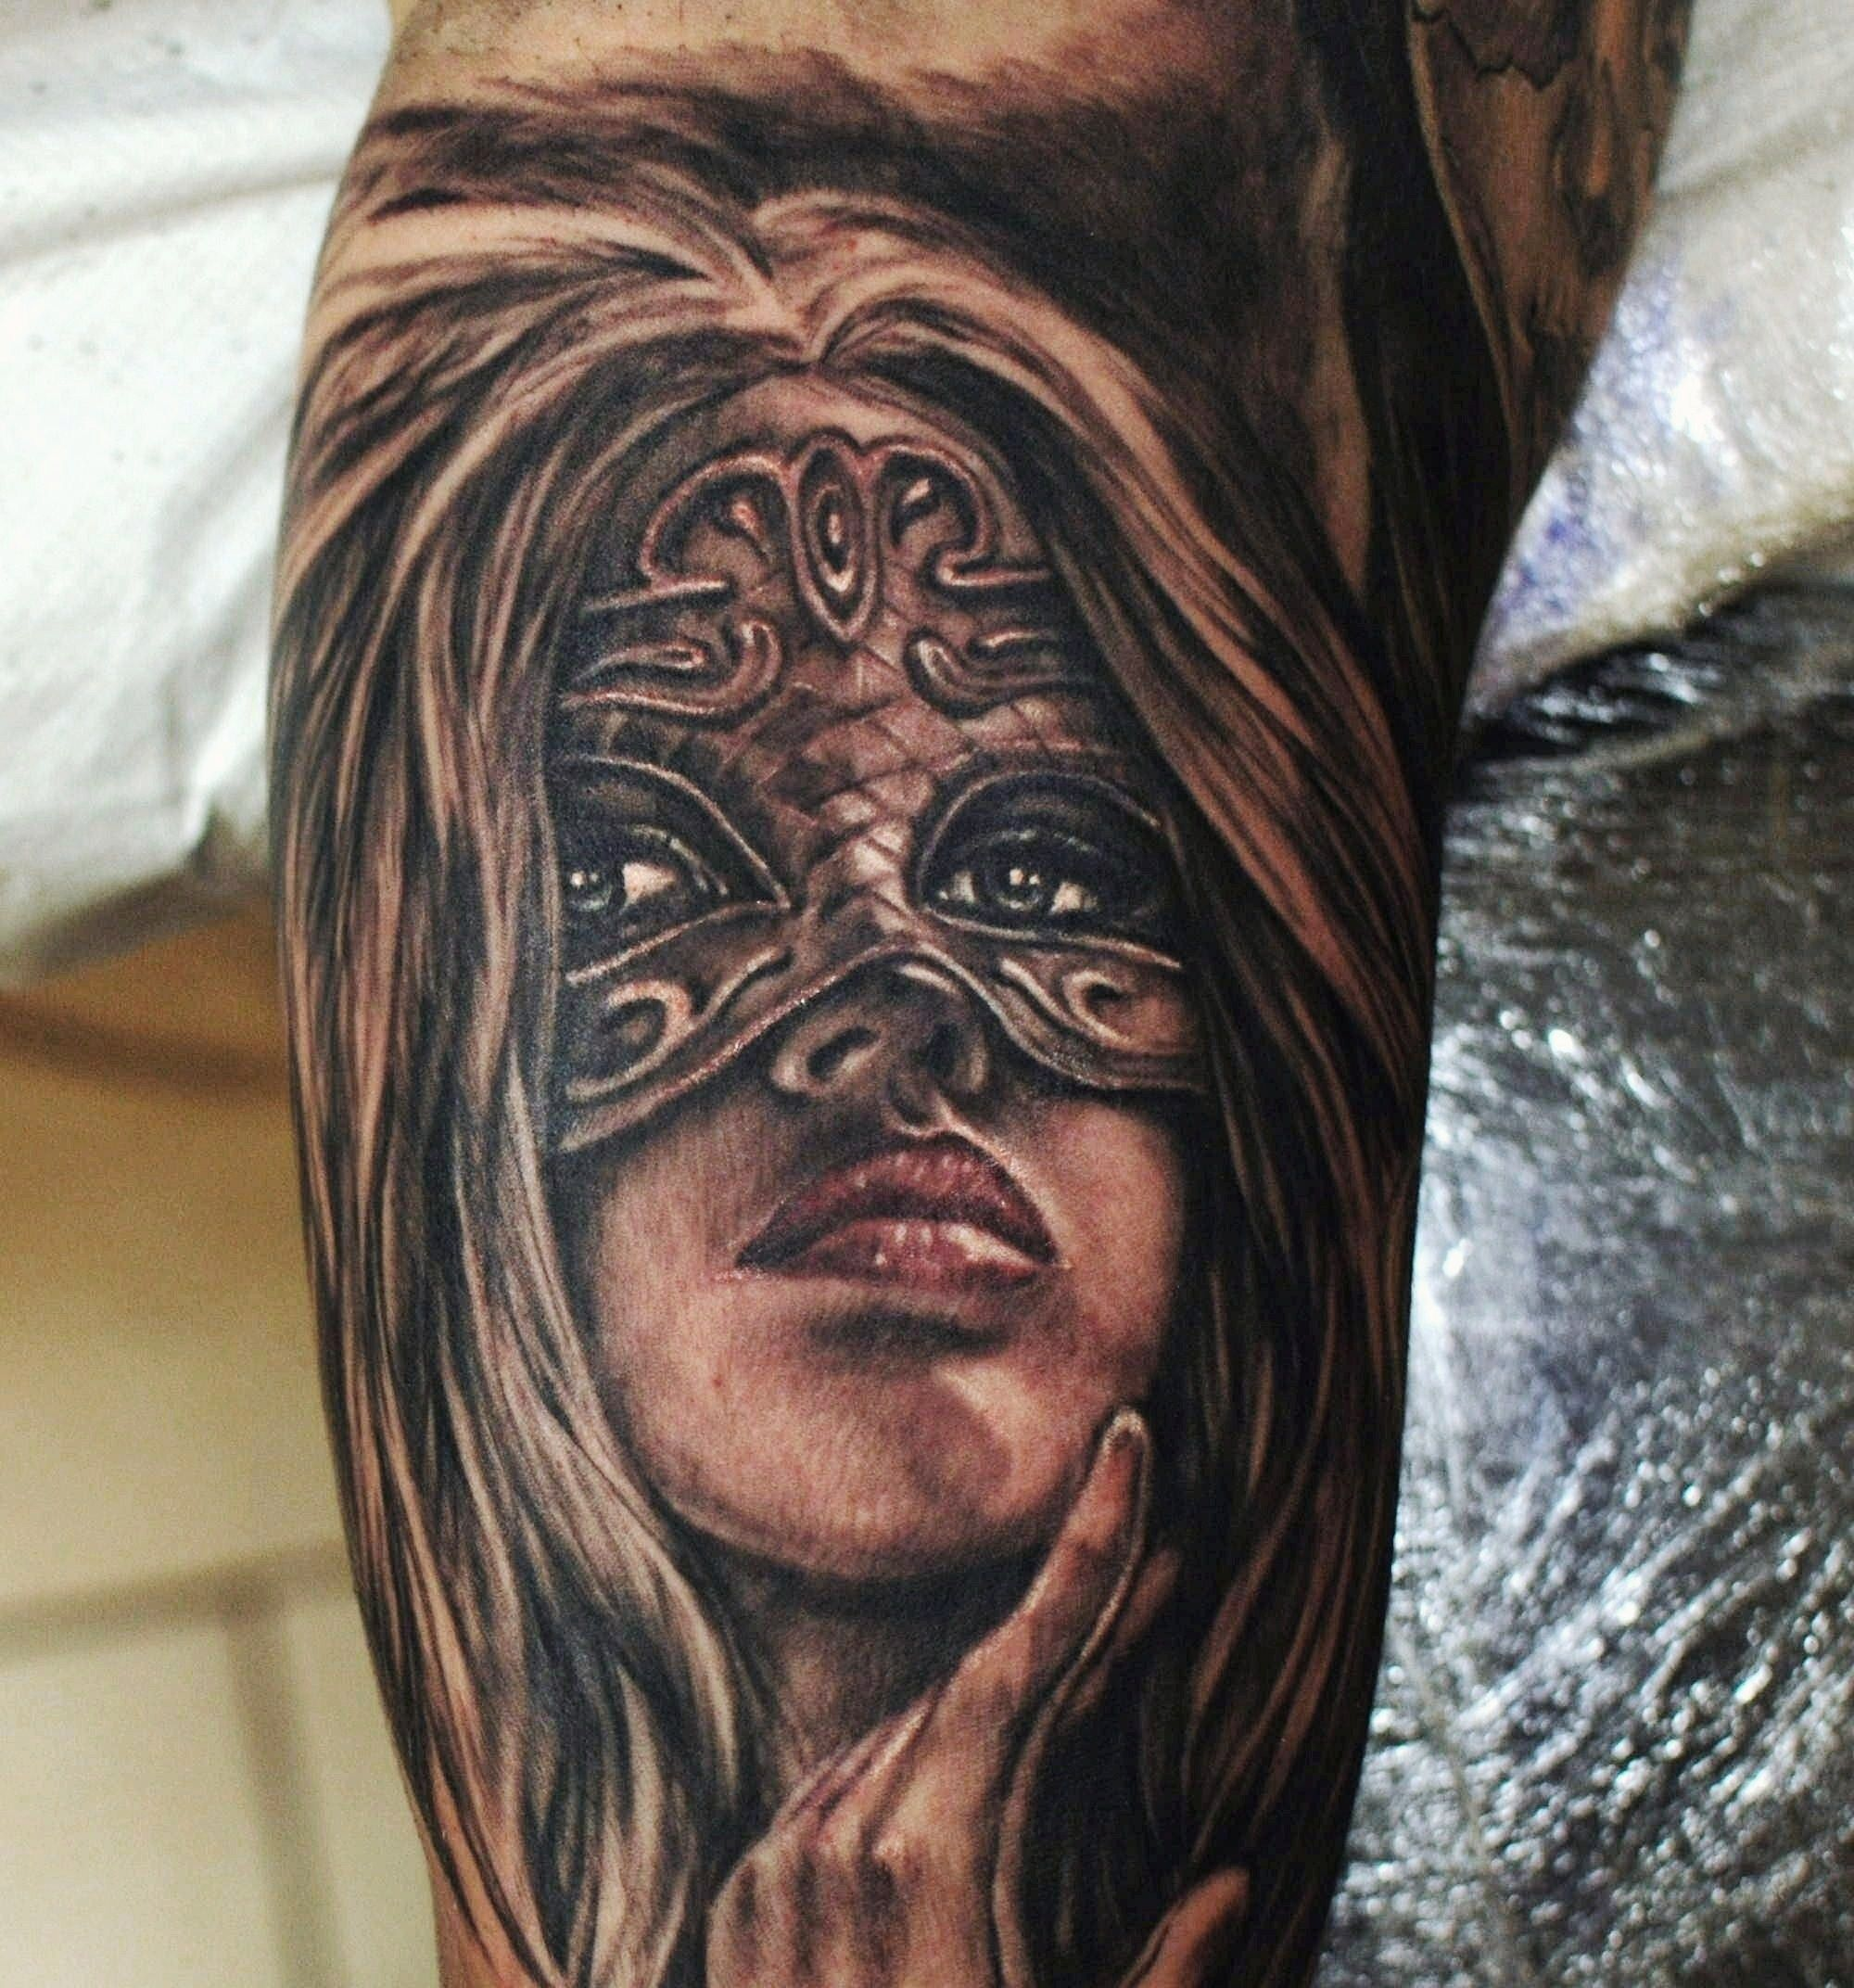 Tattoo Woman Face Mask: #venice #mask #girl #face #tattoo #west #london #ink